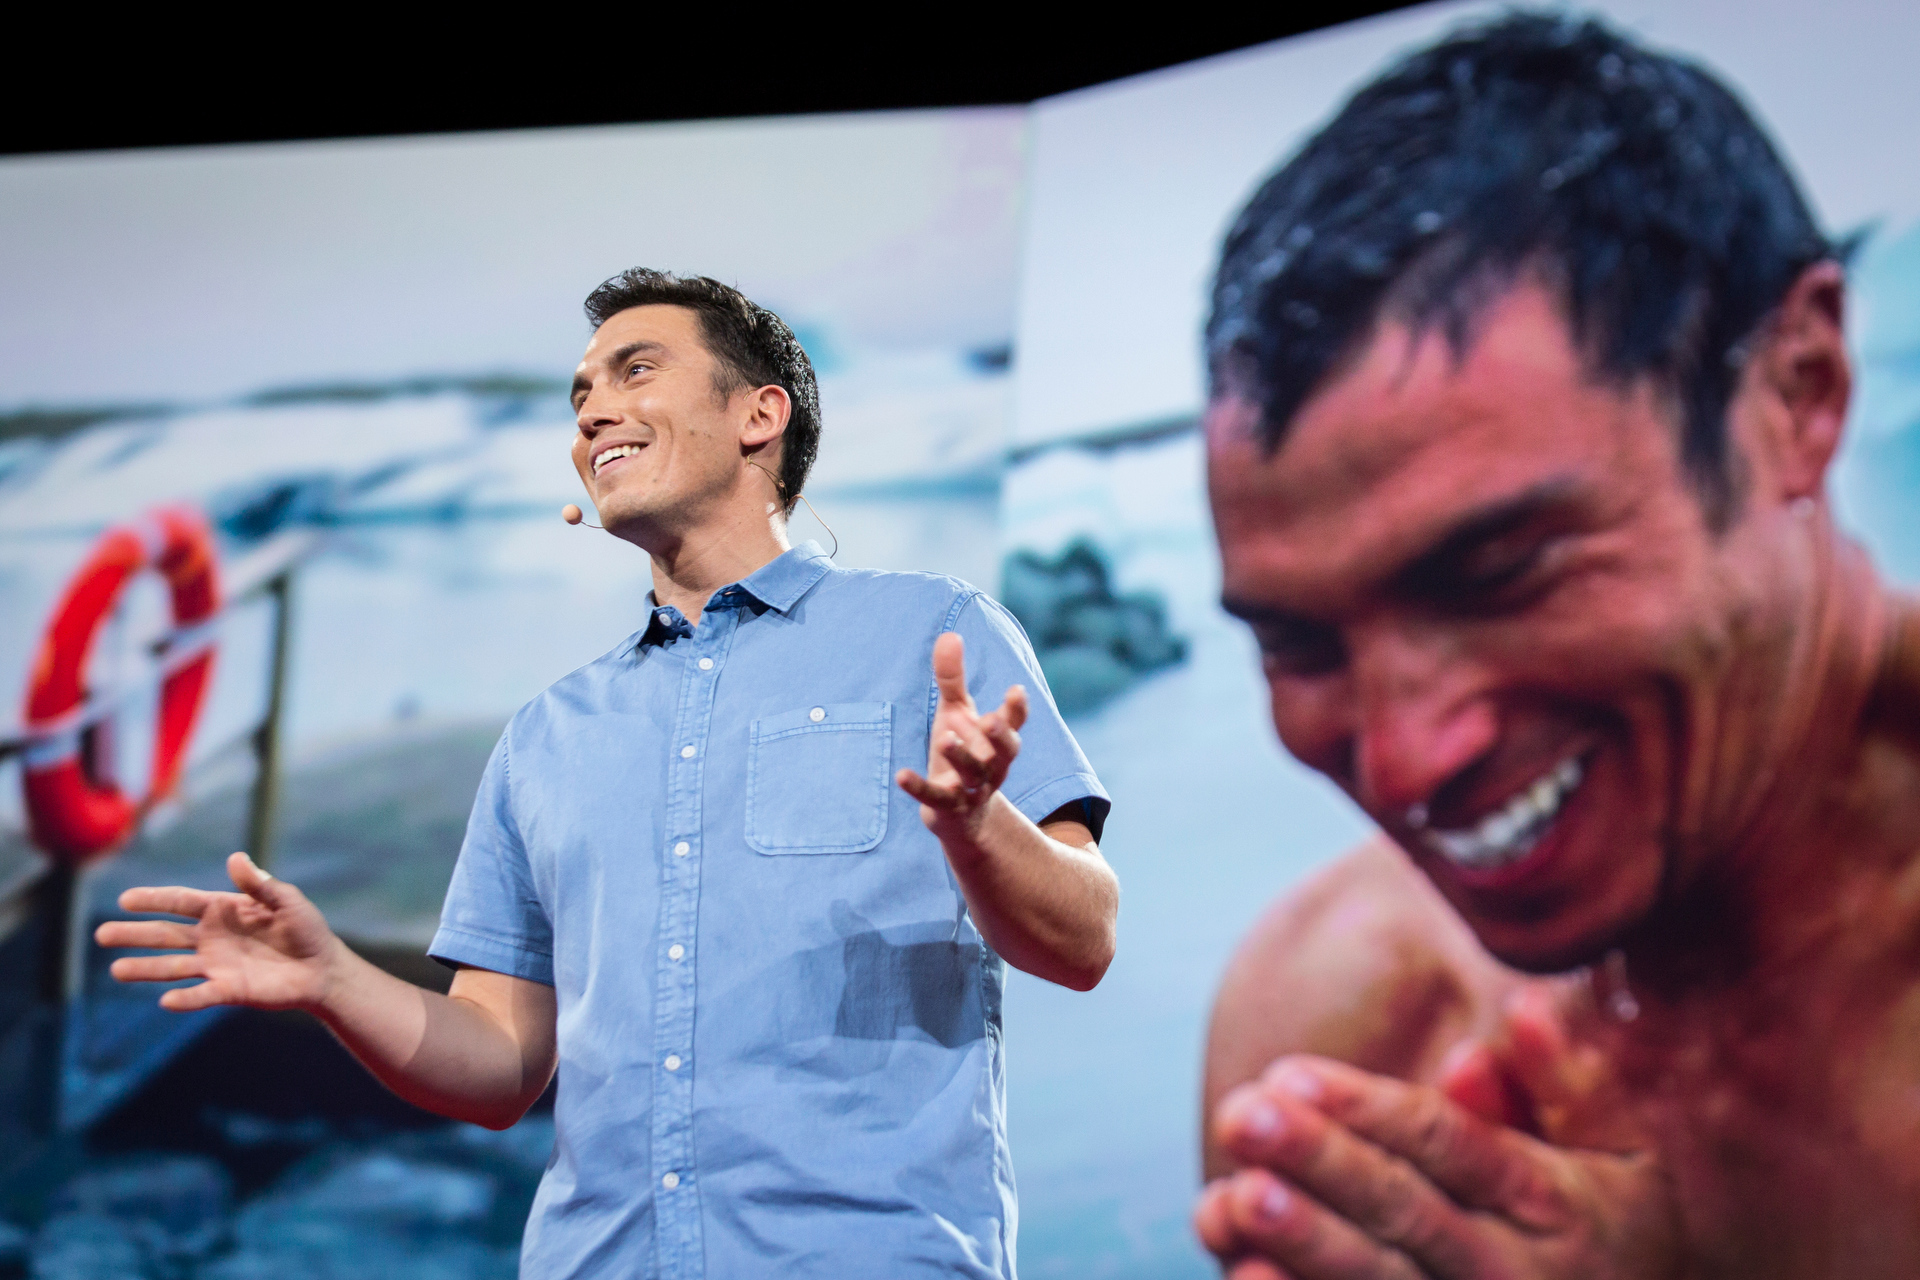 Chris Burkard speaks at TED2015 - Truth and Dare, Session 11. Photo: Bret Hartman/TED